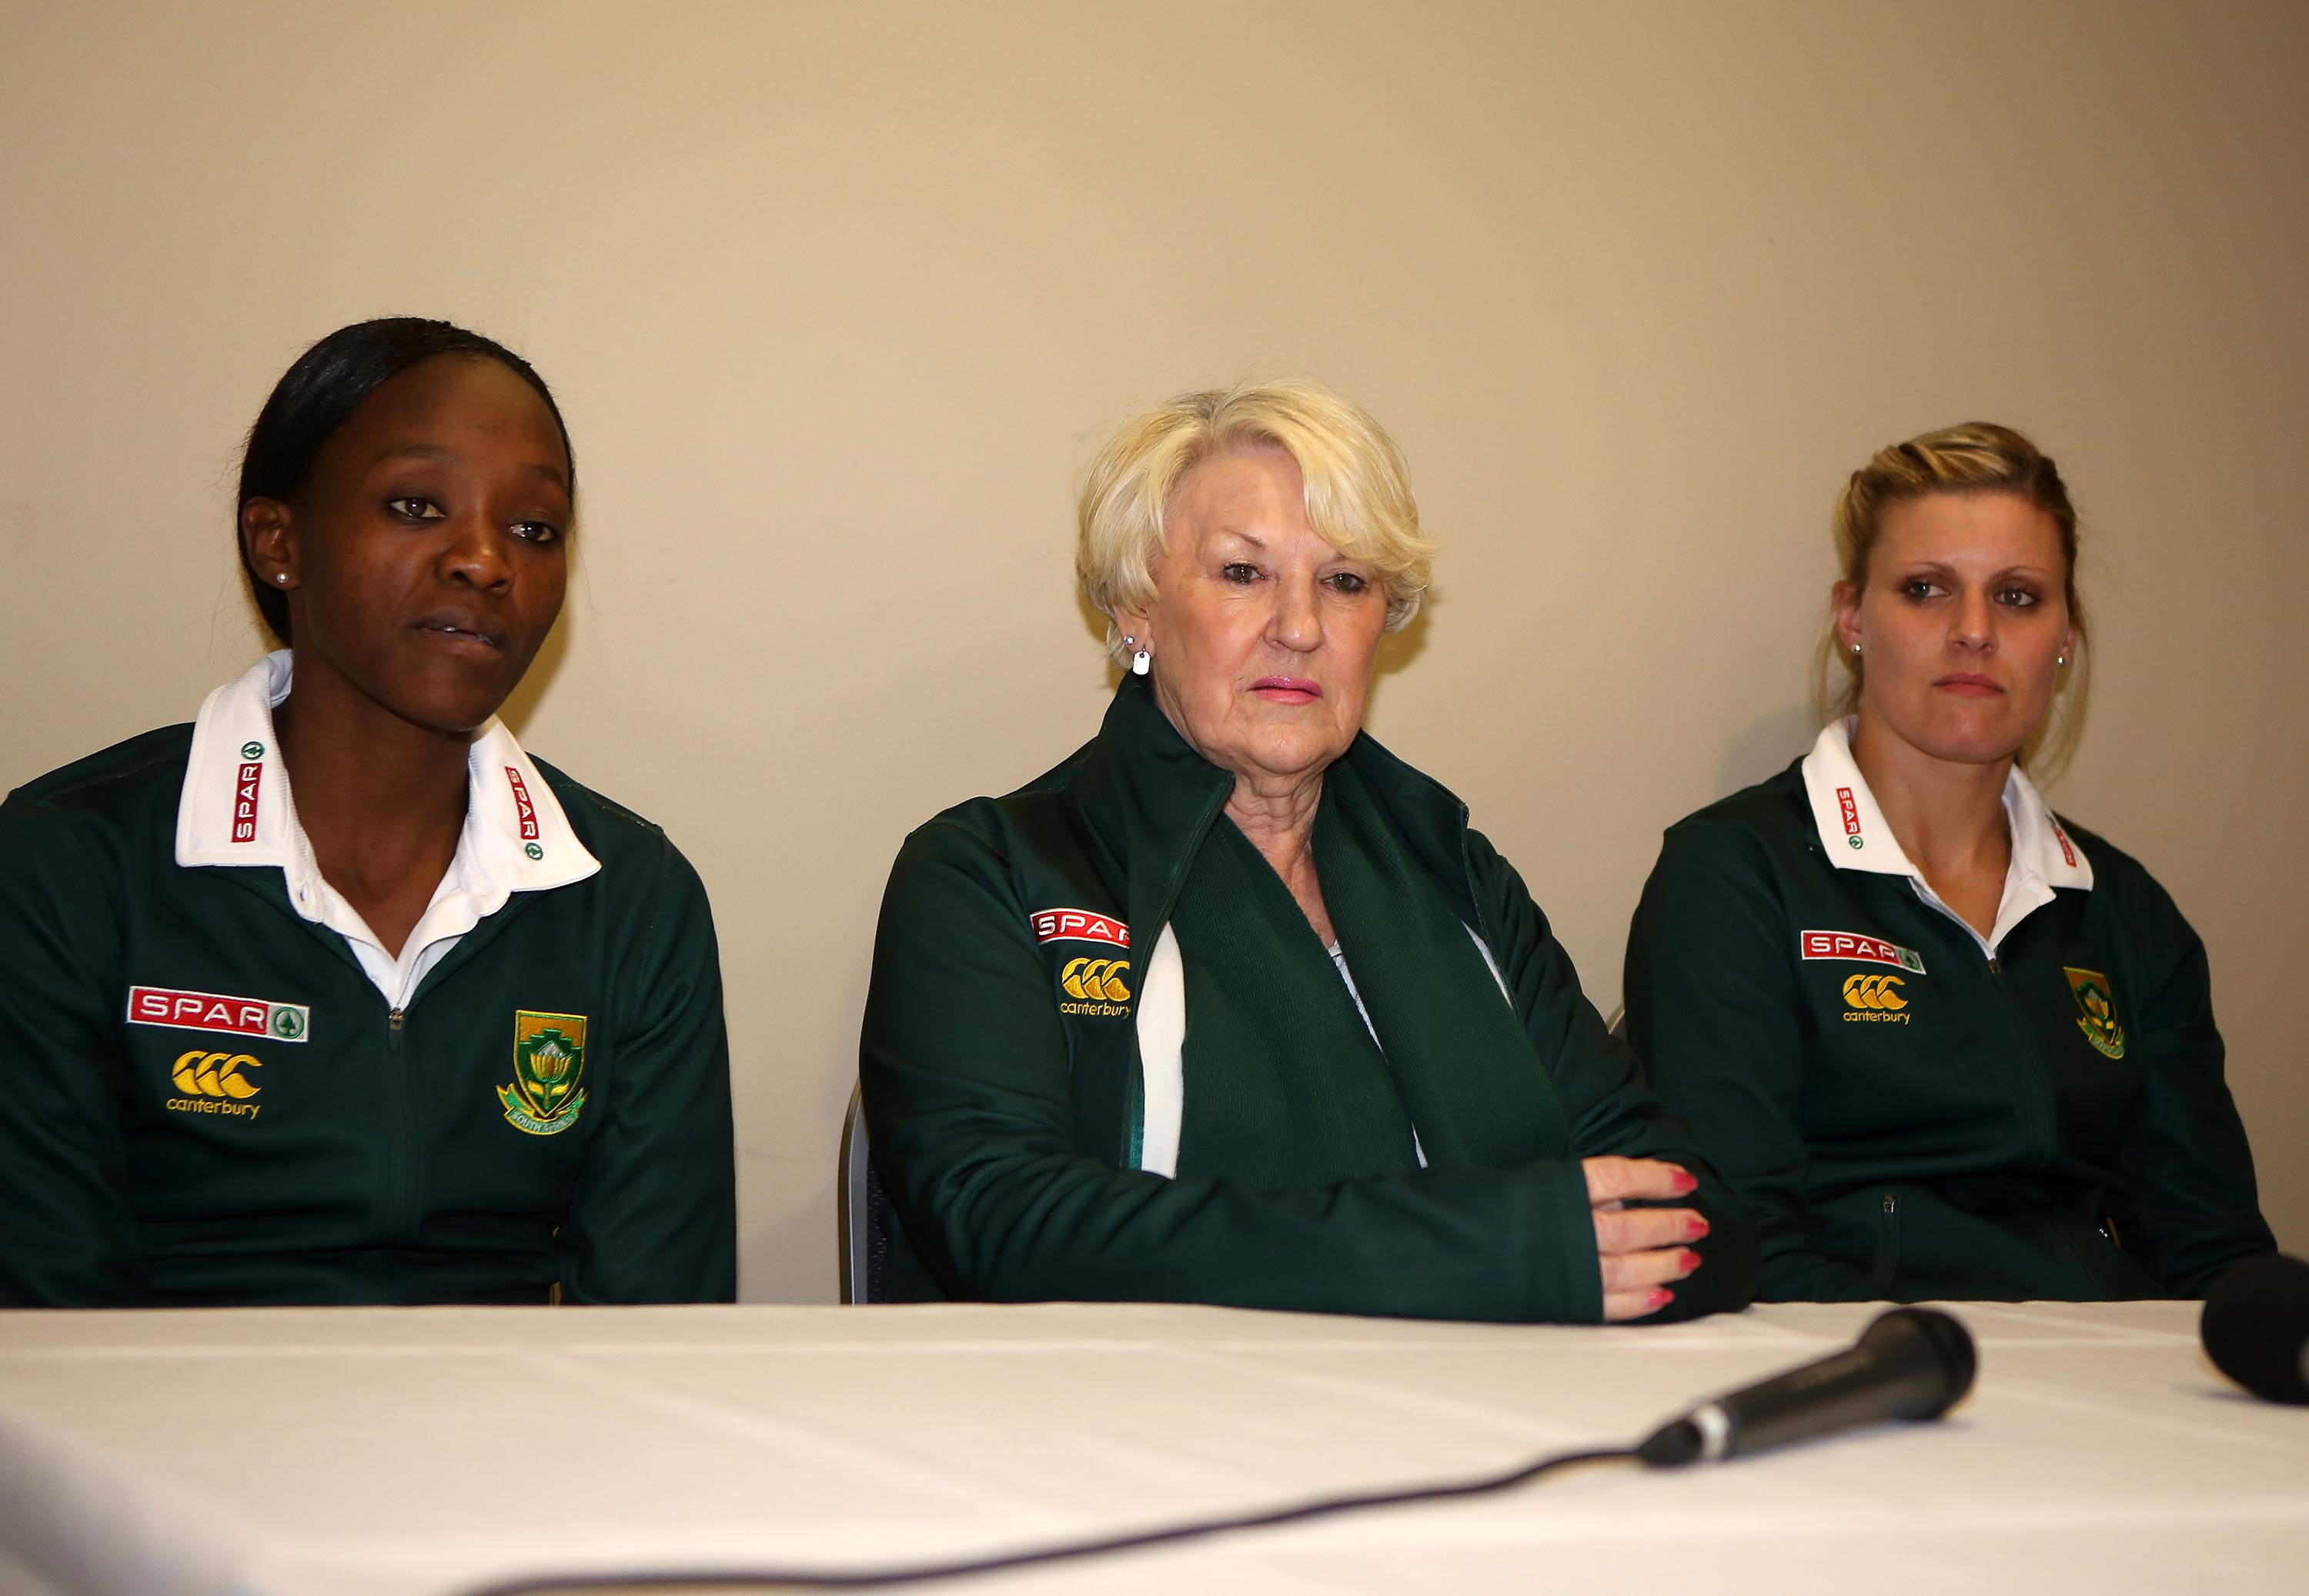 Proteas netball team are ready to roll at World Cup in Sydney